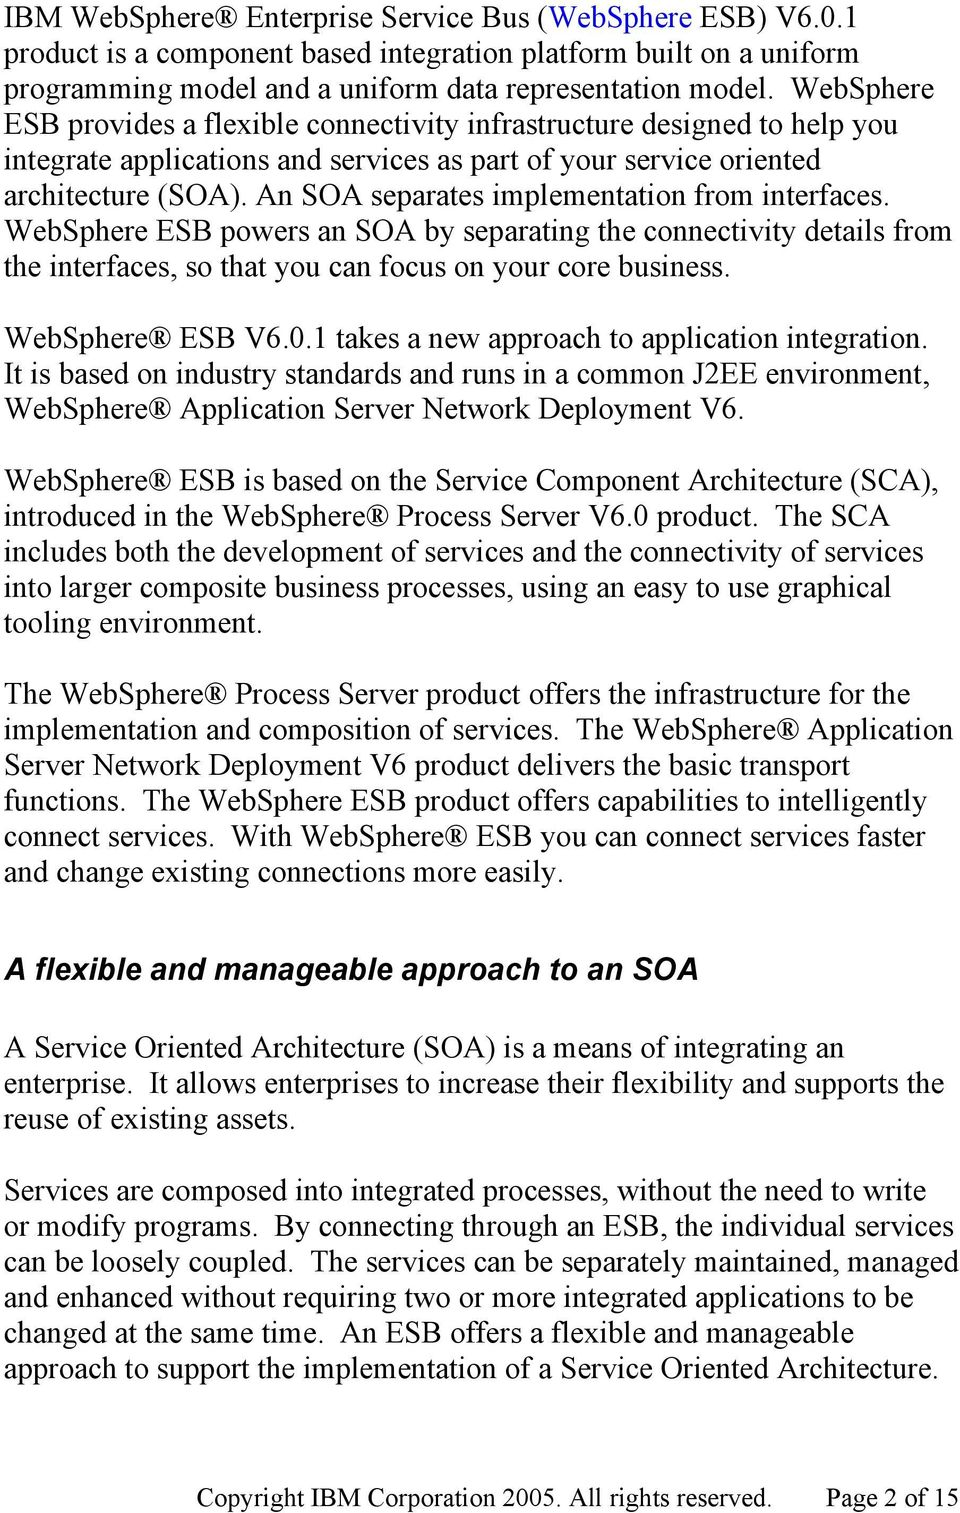 An SOA separates implementation from interfaces. WebSphere ESB powers an SOA by separating the connectivity details from the interfaces, so that you can focus on your core business. WebSphere ESB V6.